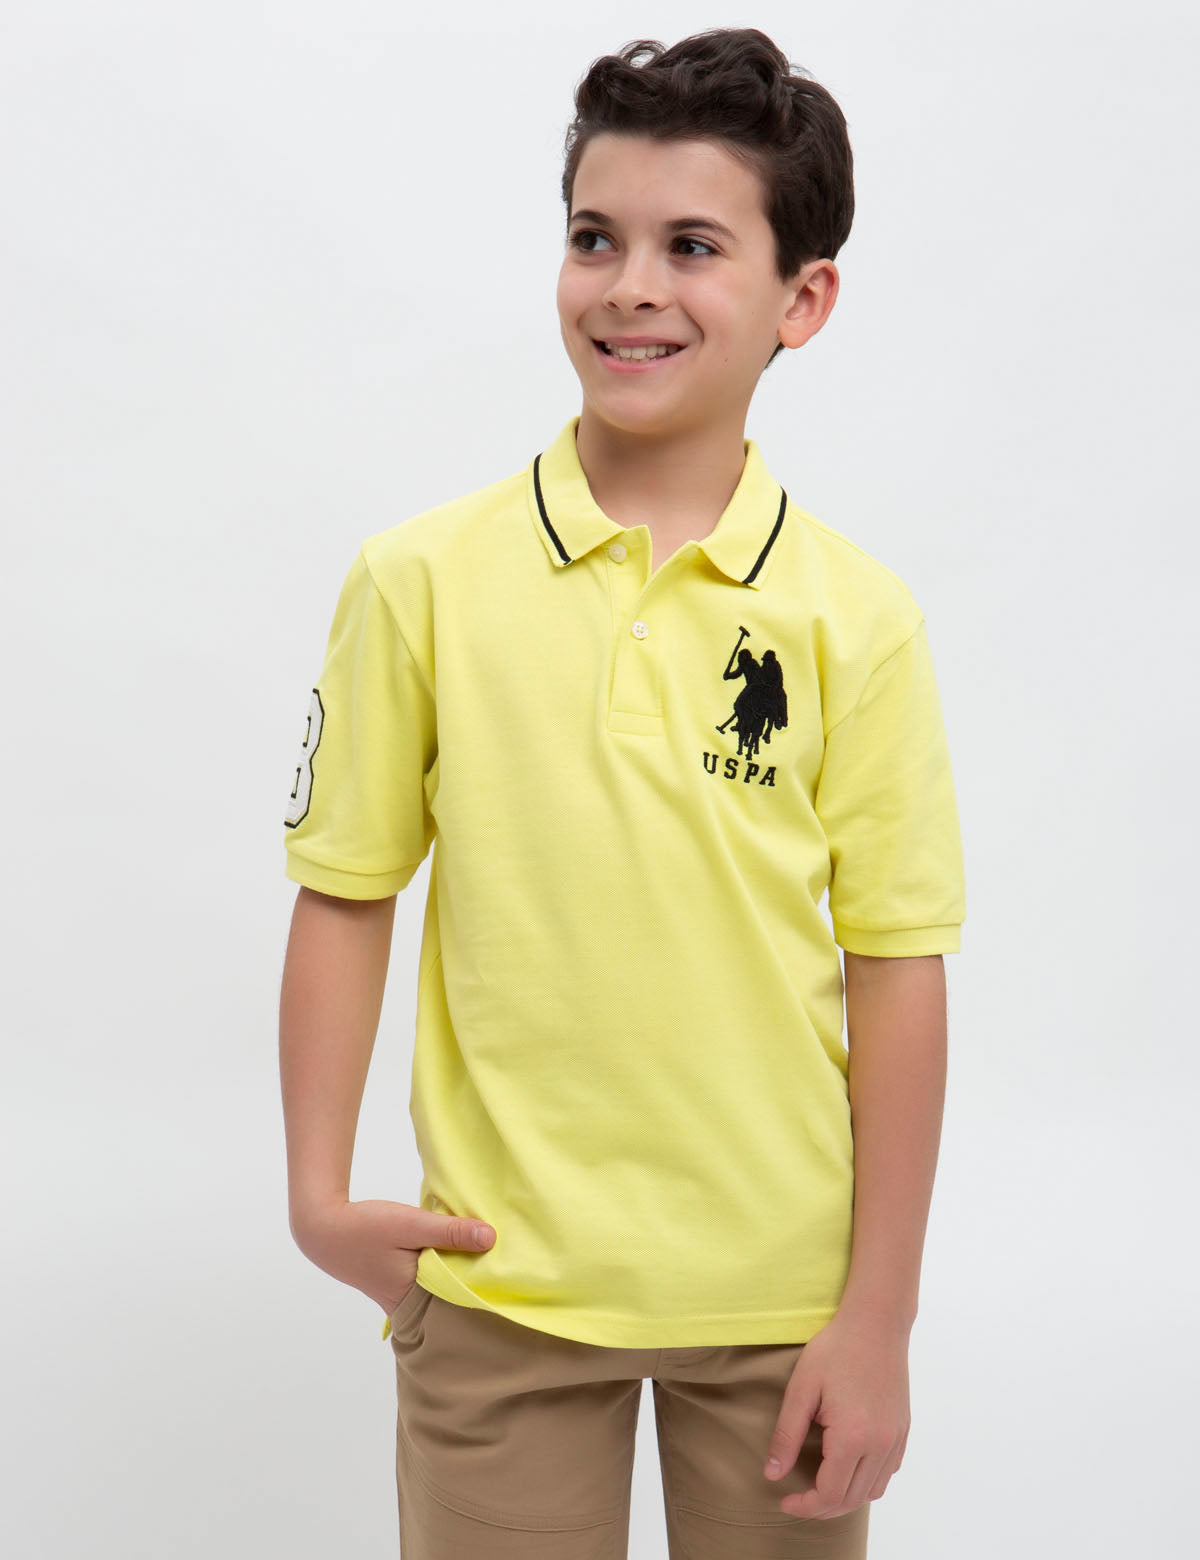 Boys T-Shirt Polo Assn U.S